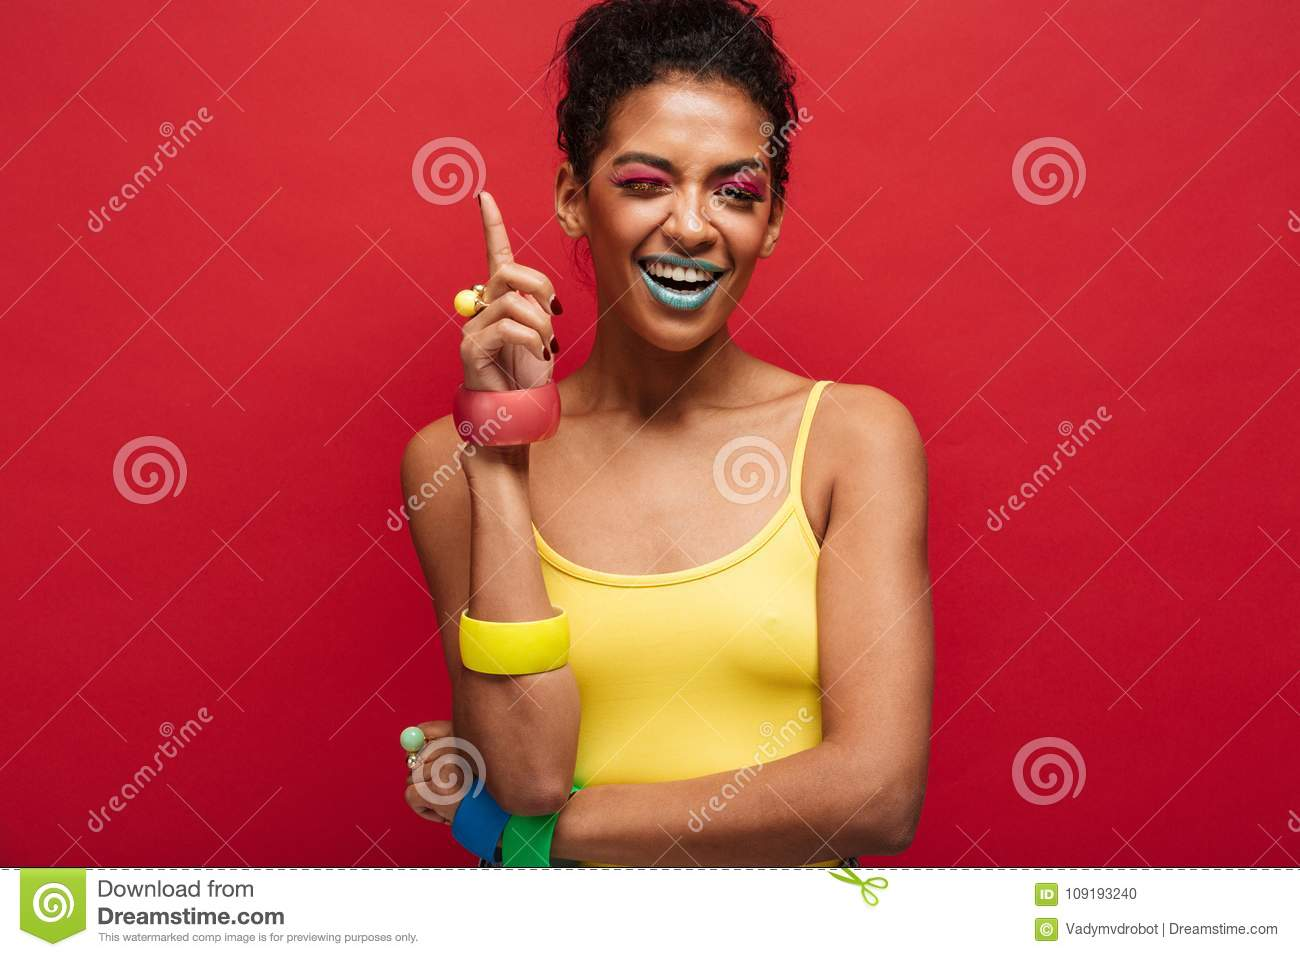 Download Fashion Image Of Joyful African American Female Model In Yellow Stock Photo - Image of african, model: 109193240